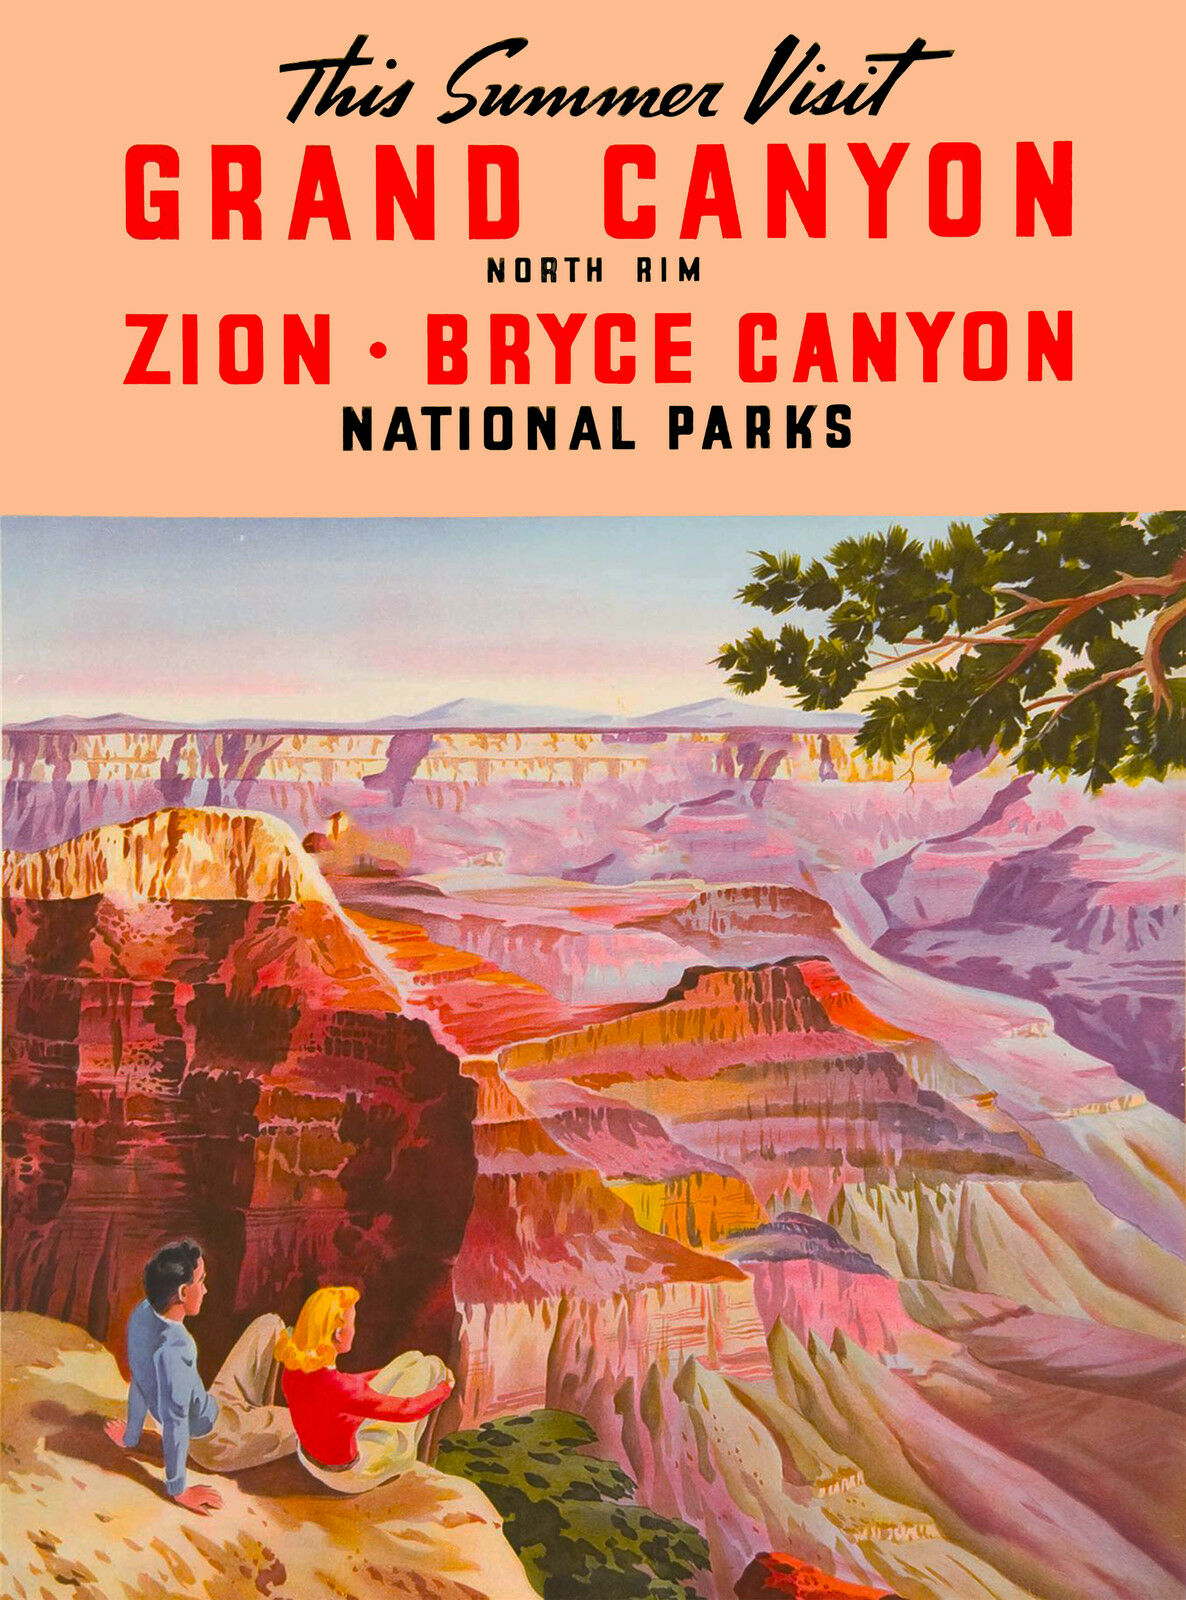 100% free online dating in bryce canyon national park All tropic hotels can be booked online this inn overlooks bryce canyon national park and grand staircase escalante national monumen offering free wi-fi.